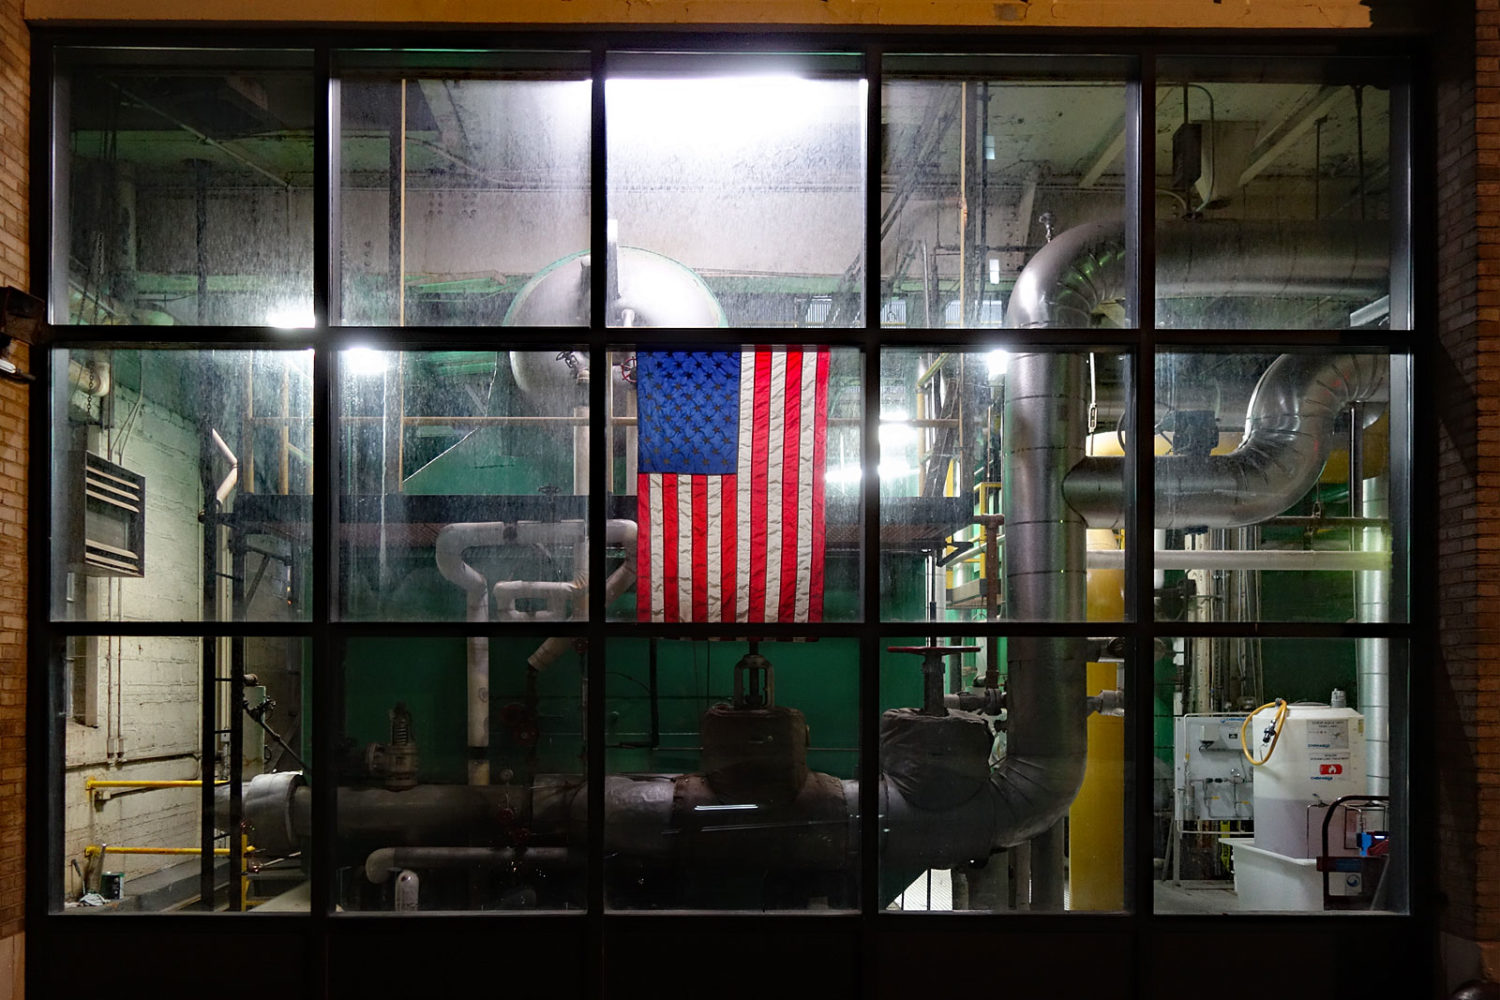 Lawn Street RGE building with flag in window